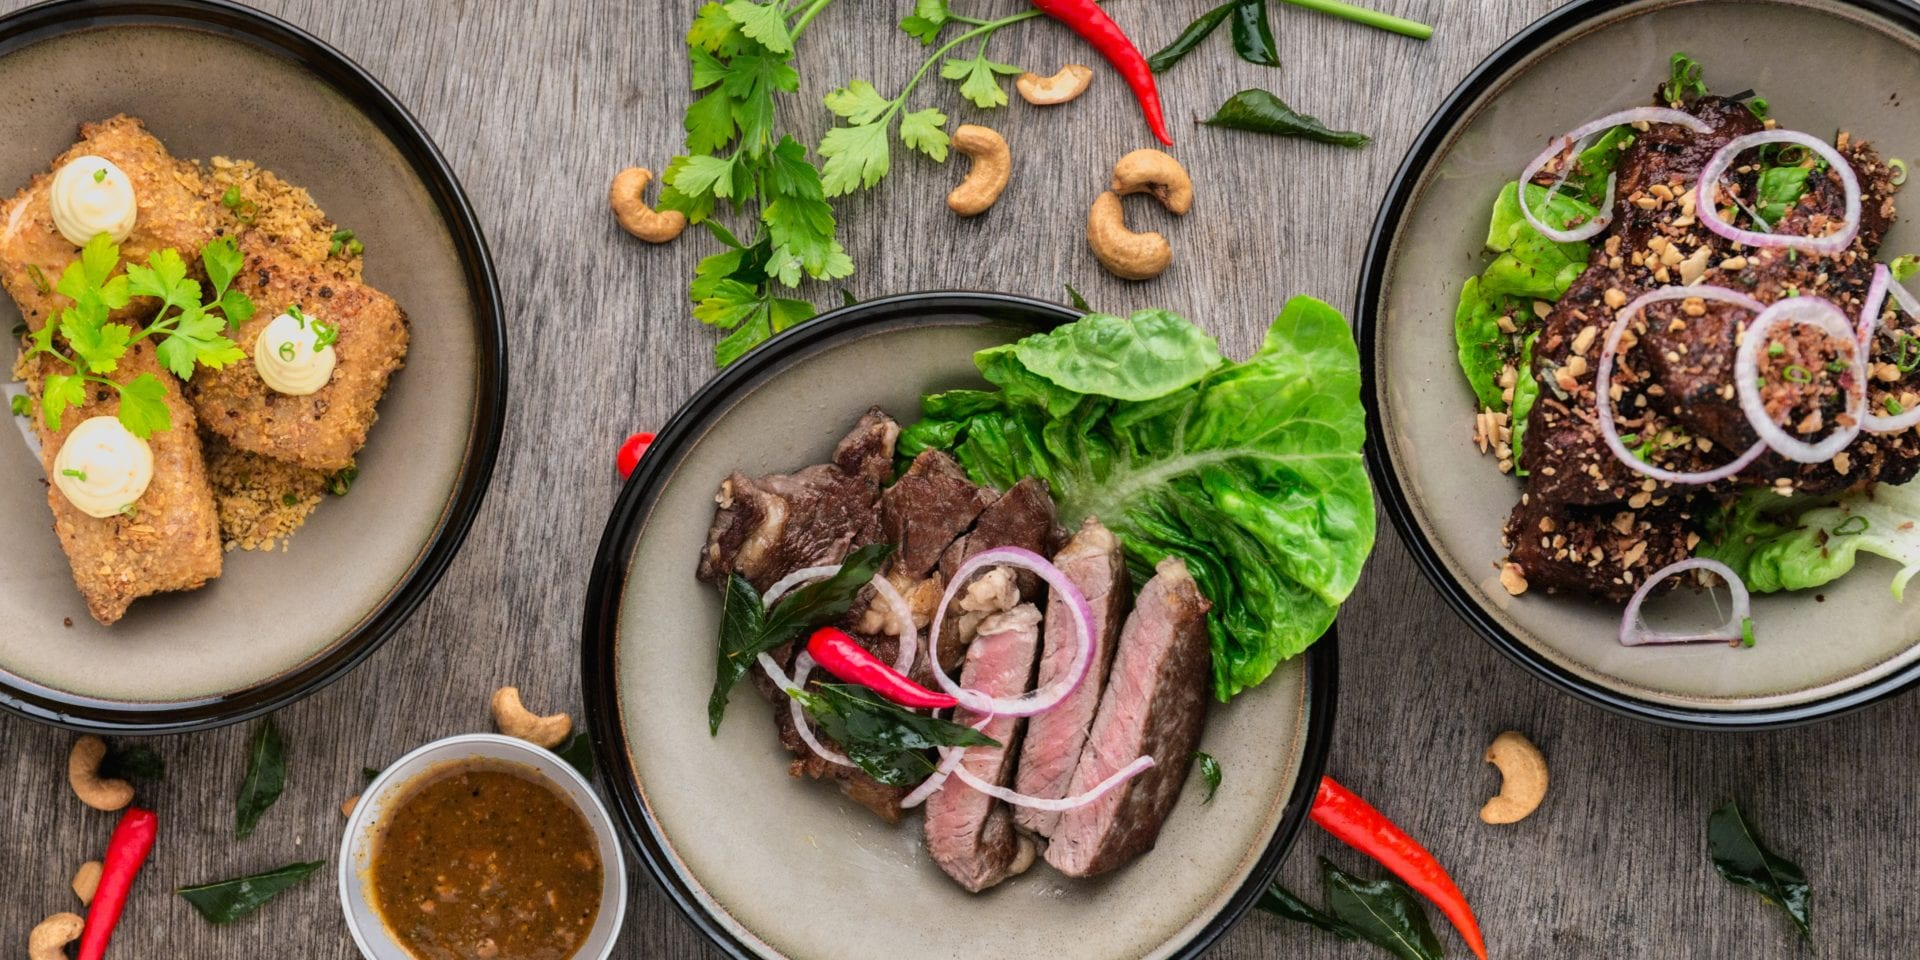 Three plates of meat dishes with salad, creative food jobs